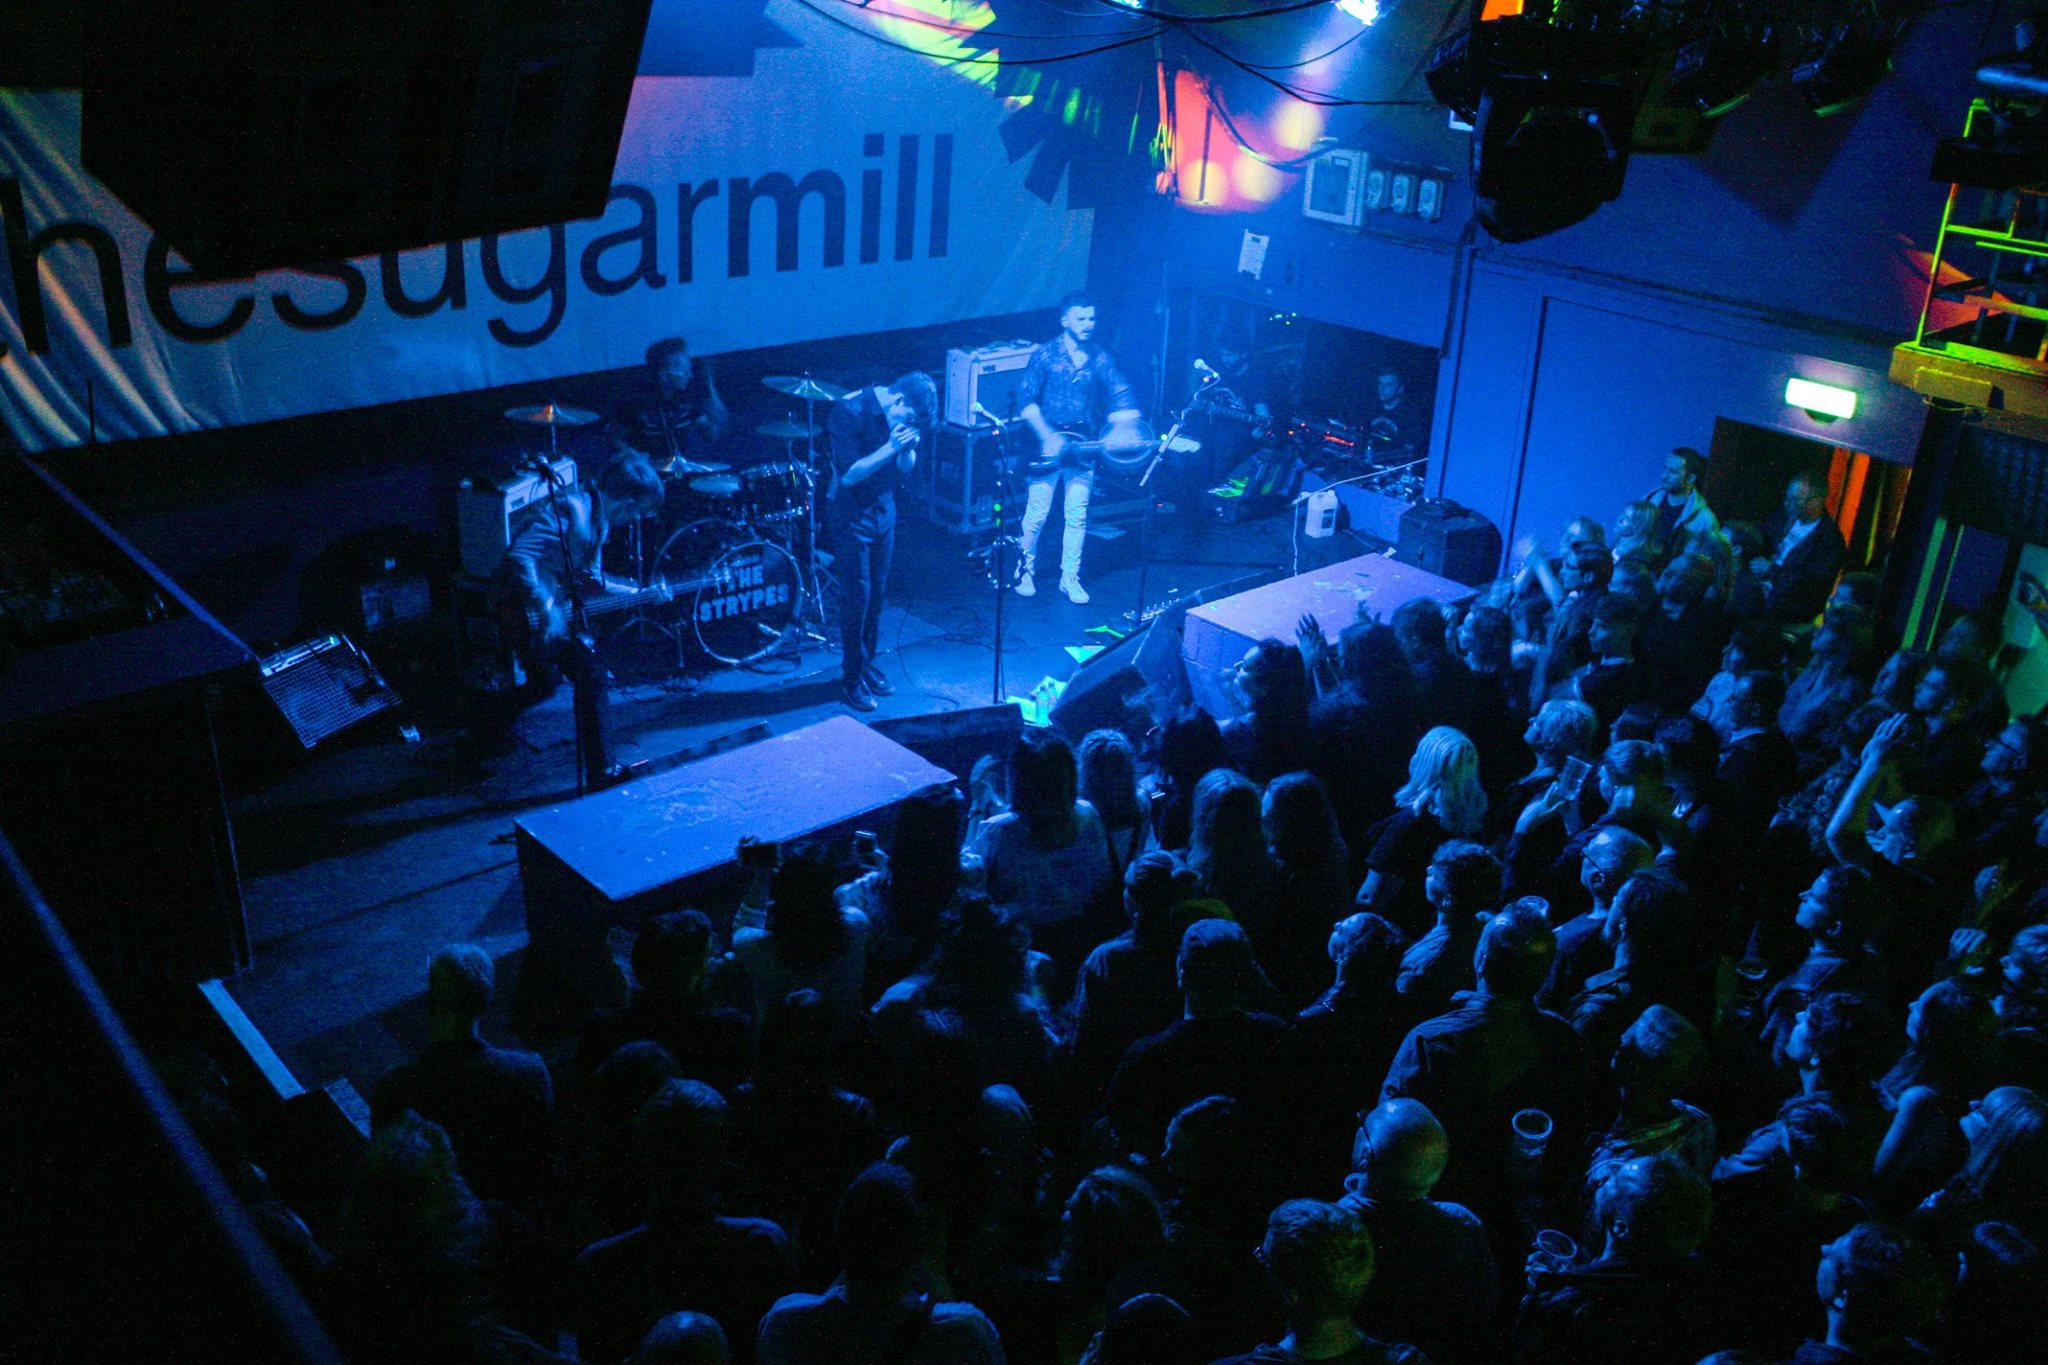 The Strypes performing at Stoke-on-Trent's Sugarmill.